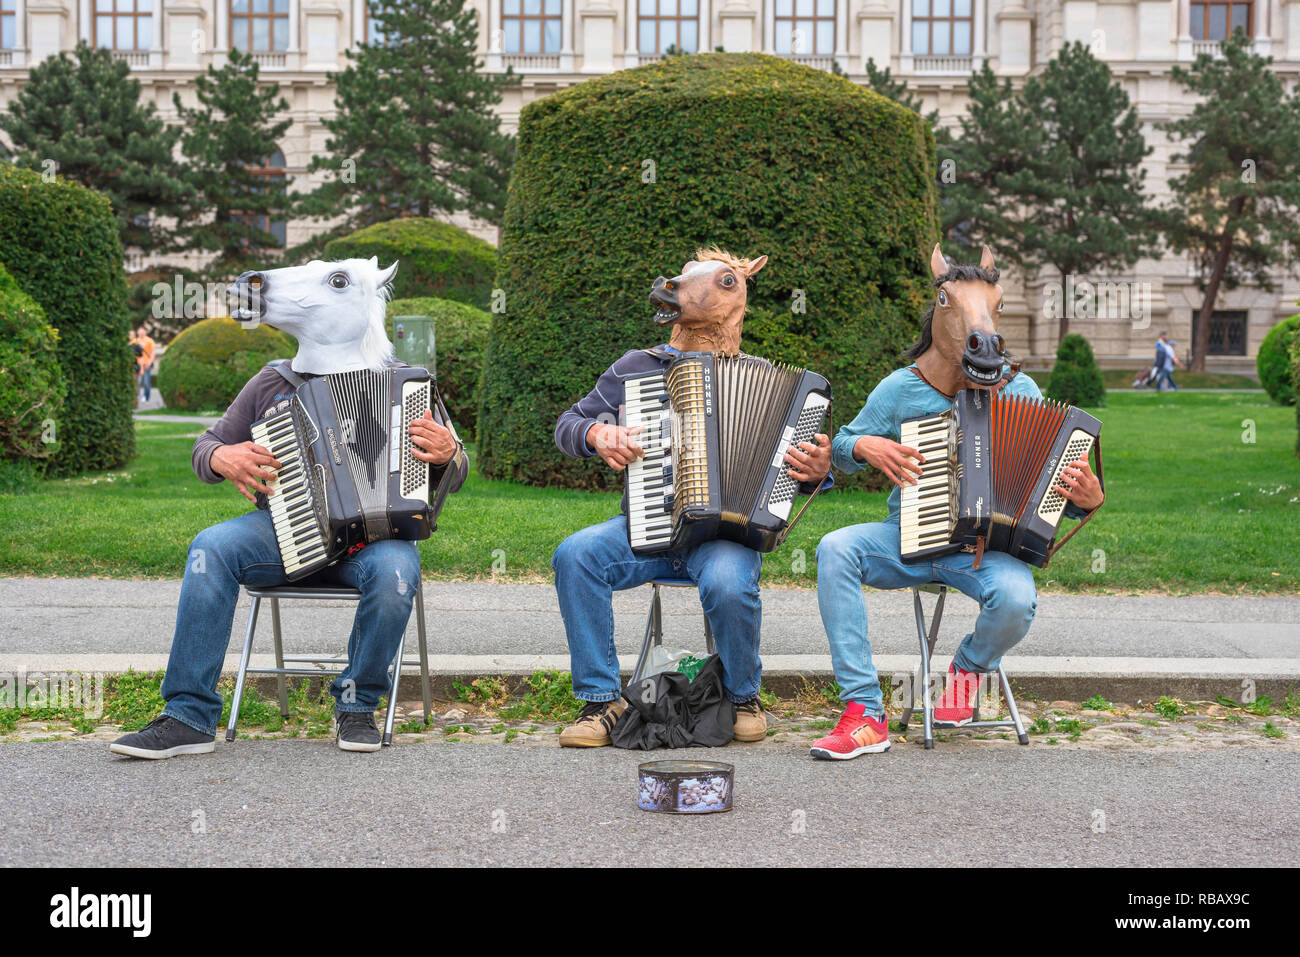 Buskers street entertainment, a trio of accordionists wearing bizarre headgear play for passersby in Maria Theresienplatz, Vienna, Wien, Austria. - Stock Image